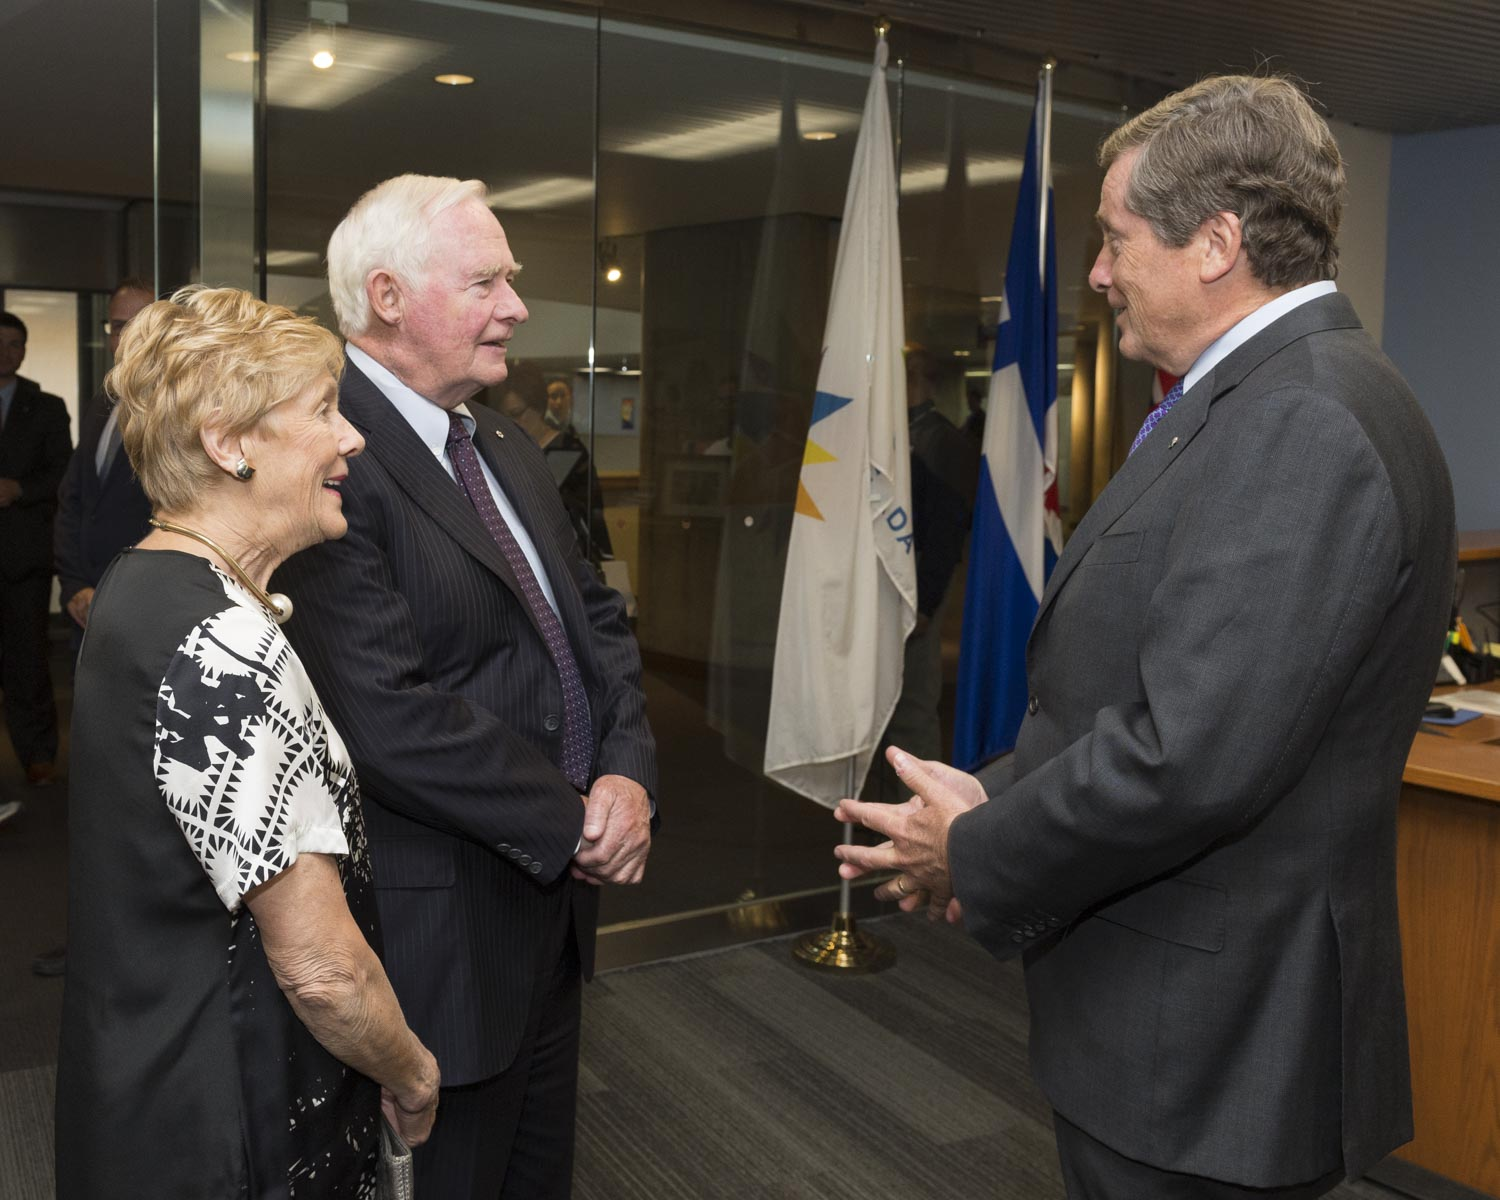 Later in the afternoon, Their Excellencies met with His Worship John Tory, Mayor of Toronto.